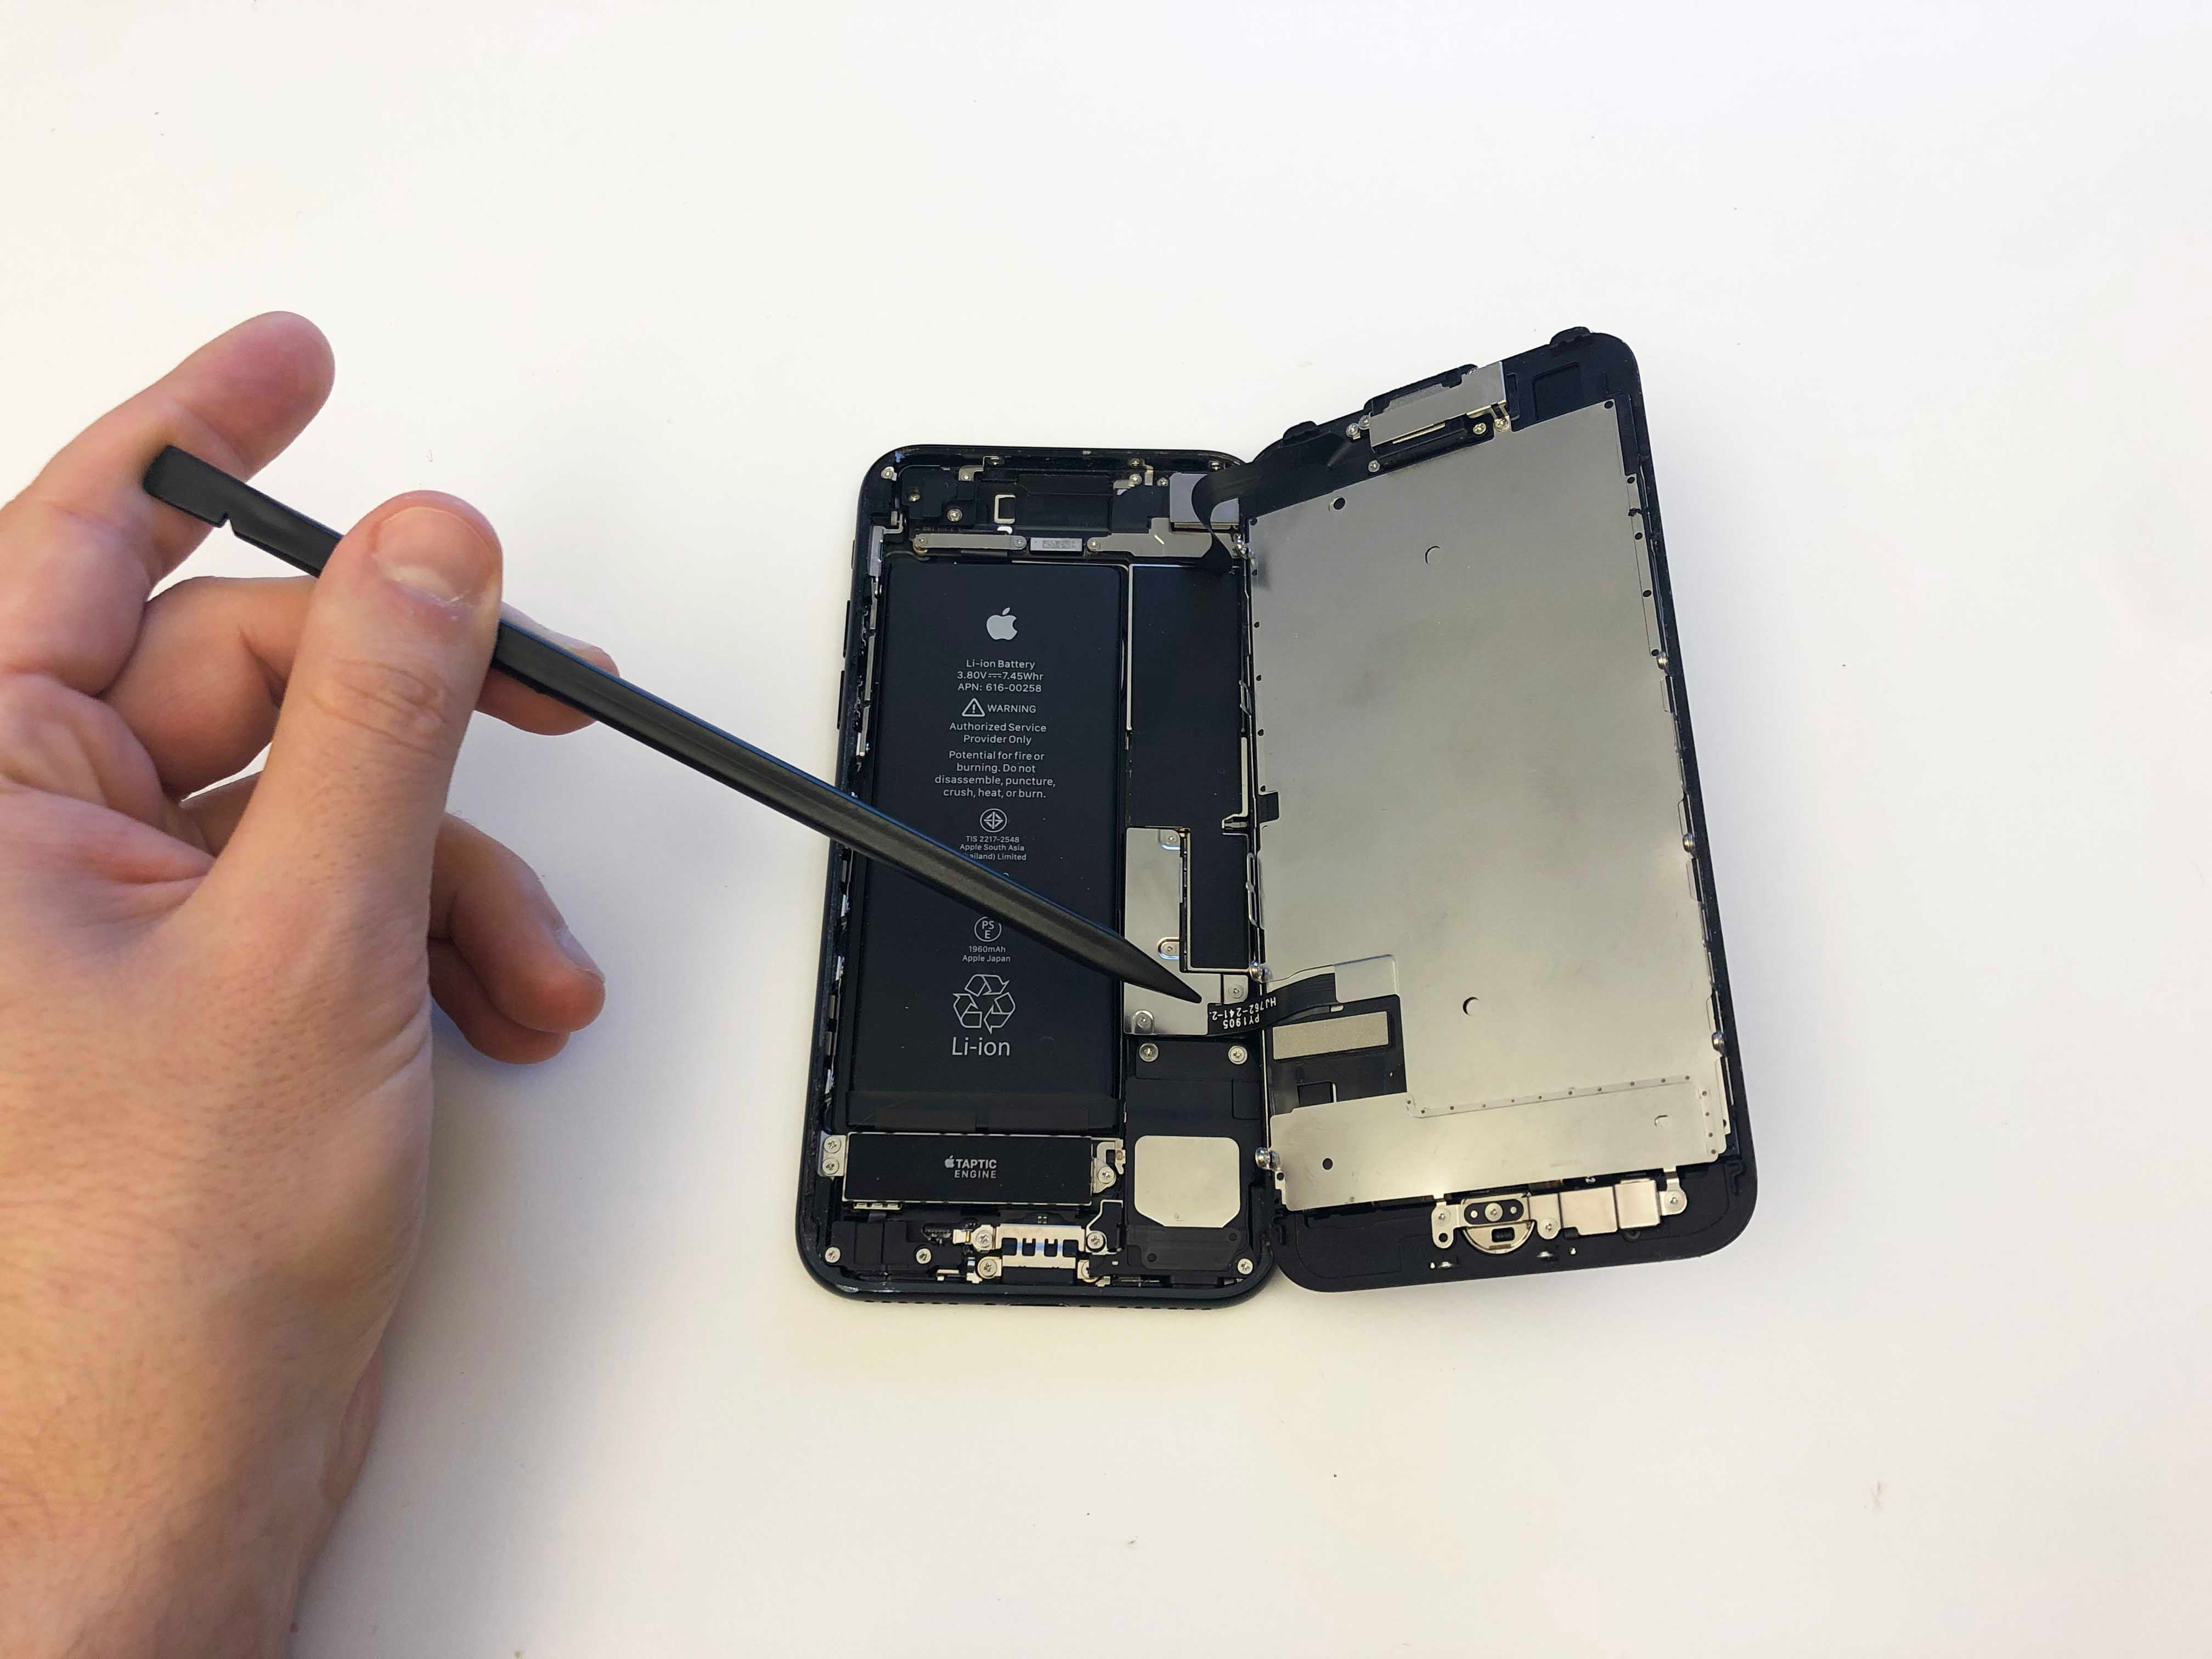 iPhone 7/7 Plus Battery Replacement - Opening the phone screen 3 - 4